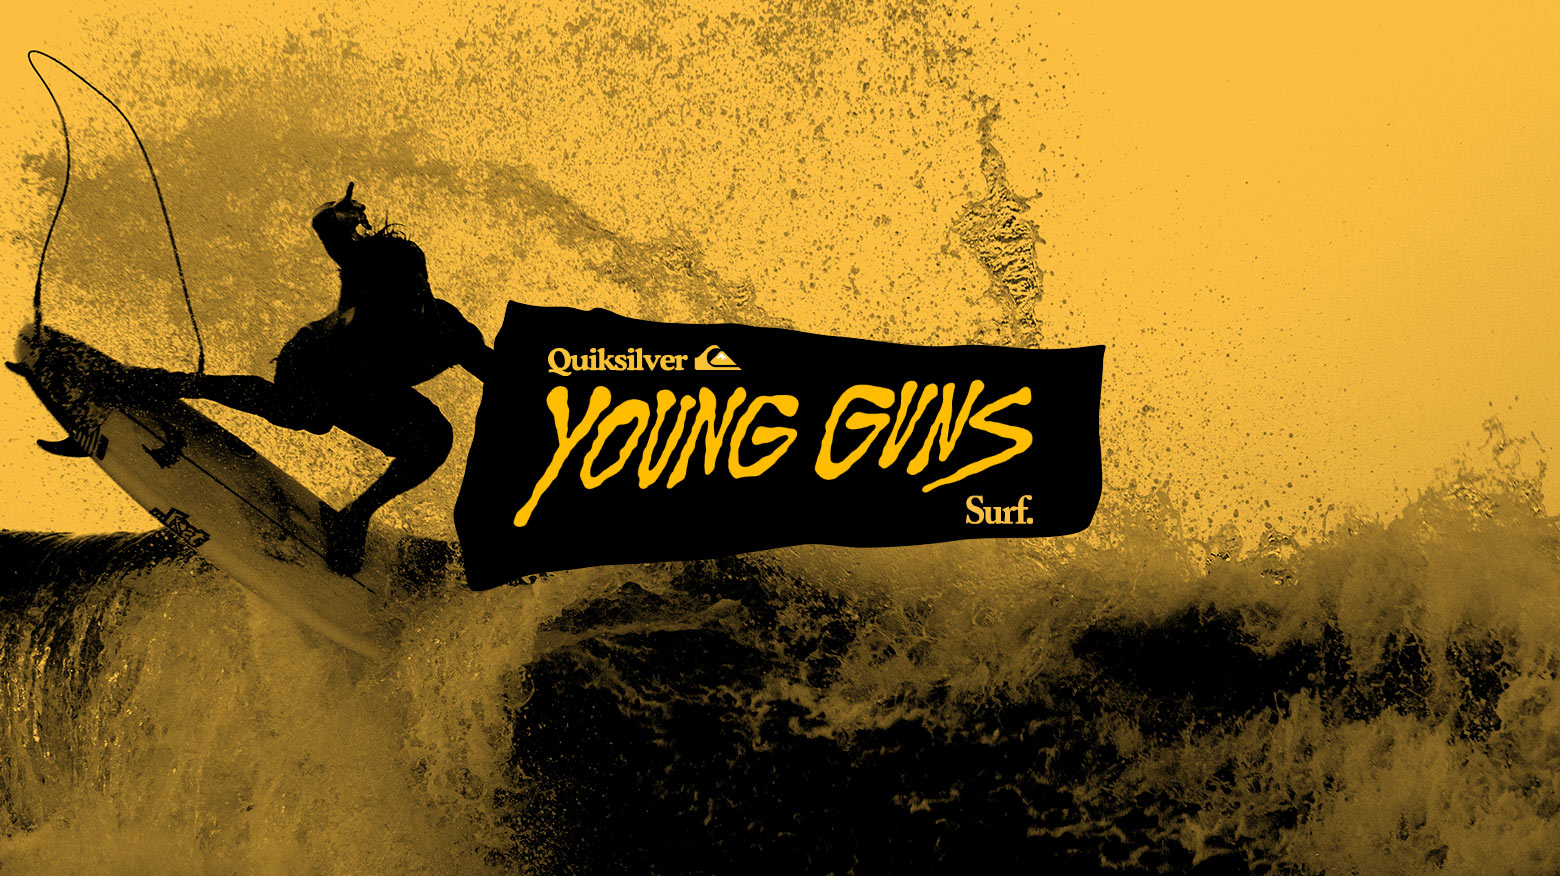 Quiksilver Young Guns Surf